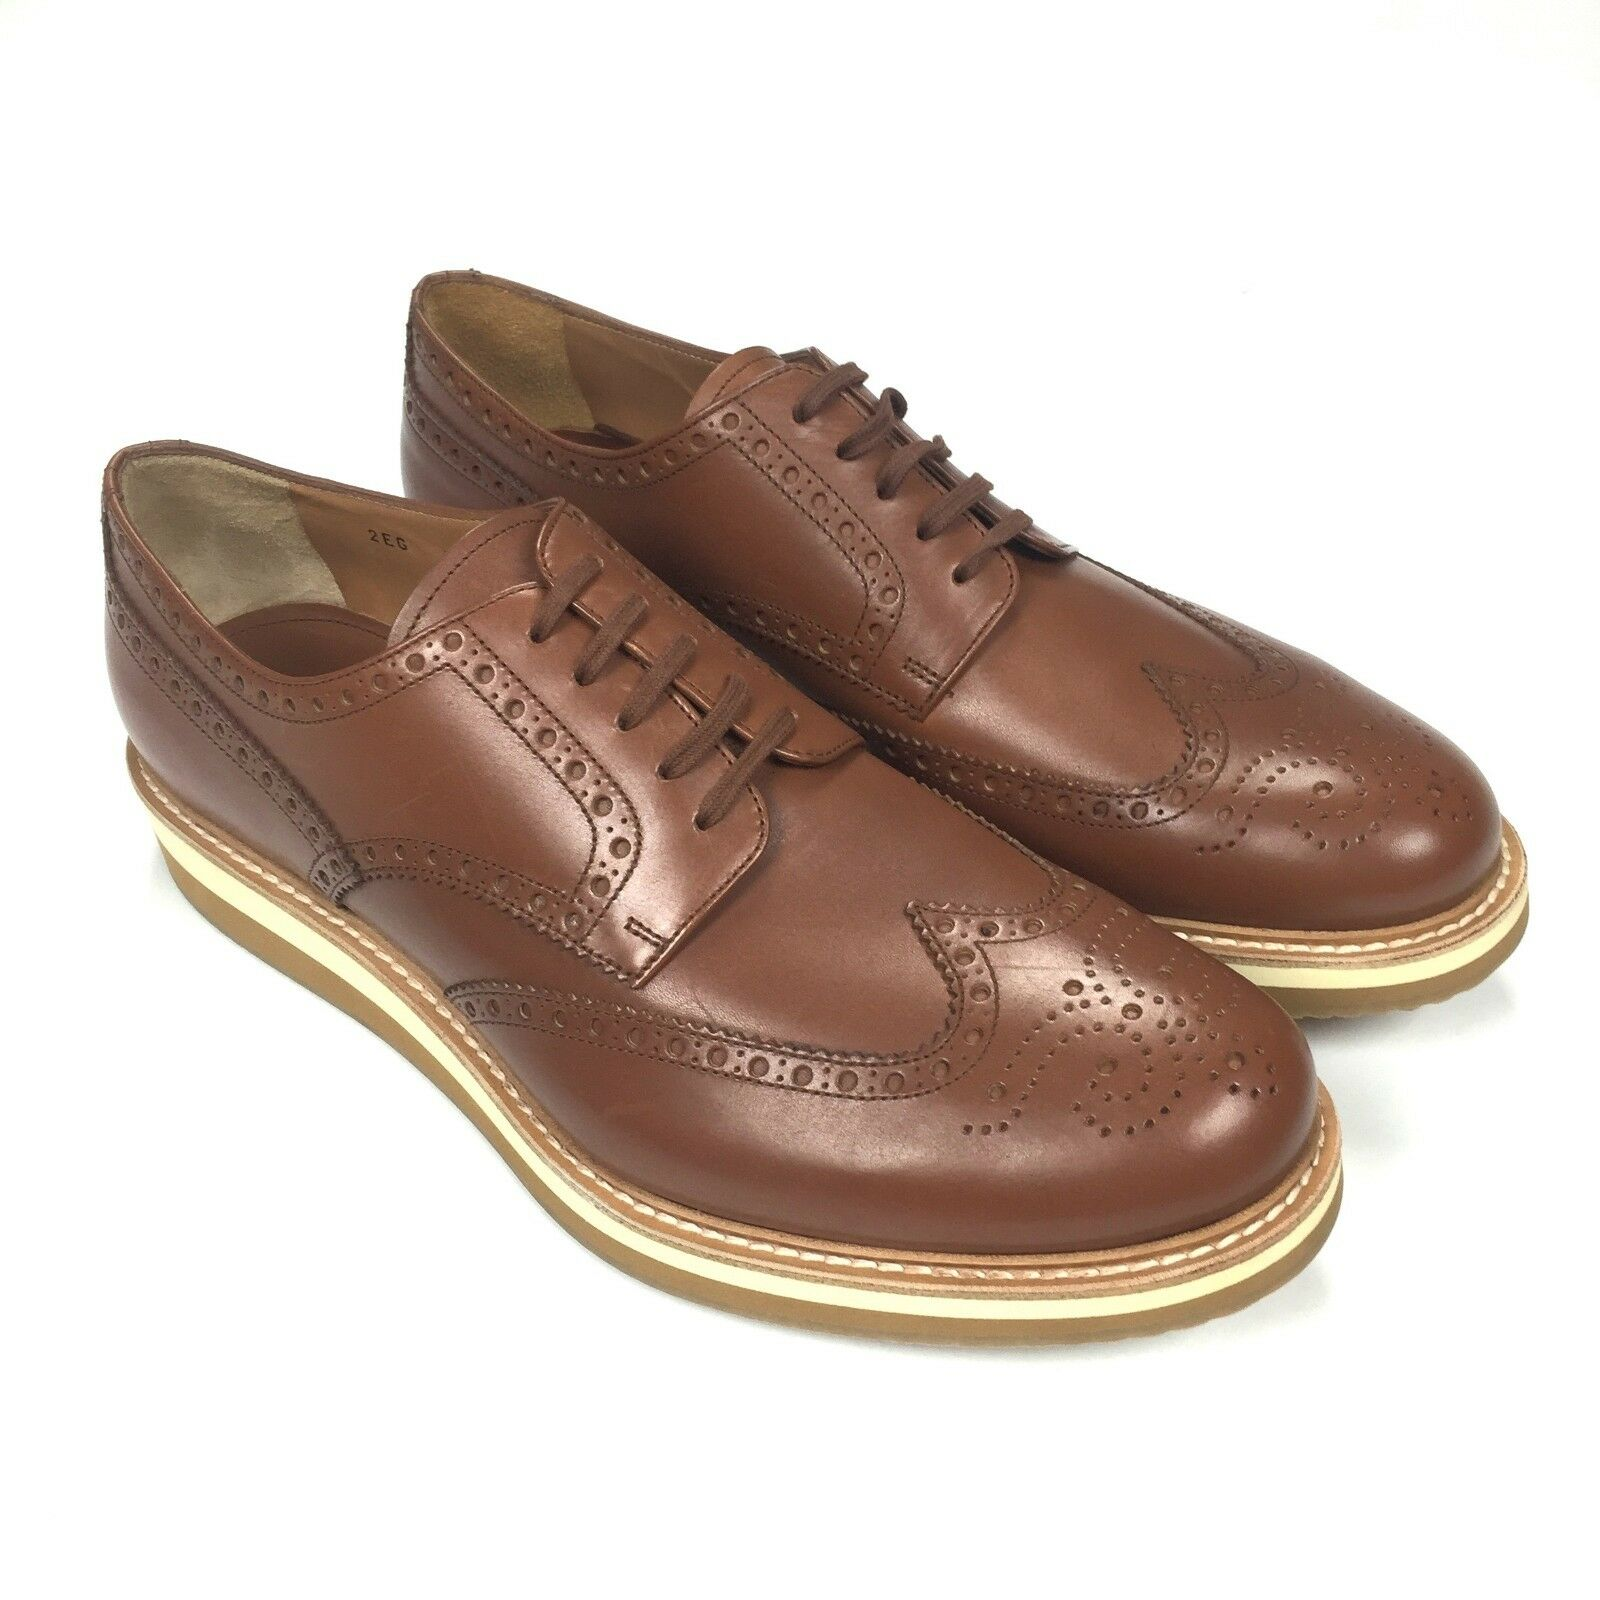 NWT  Prada RUNWAY Men's Wingtip Brogue Creeper shoes Brown Leather AUTHENTIC